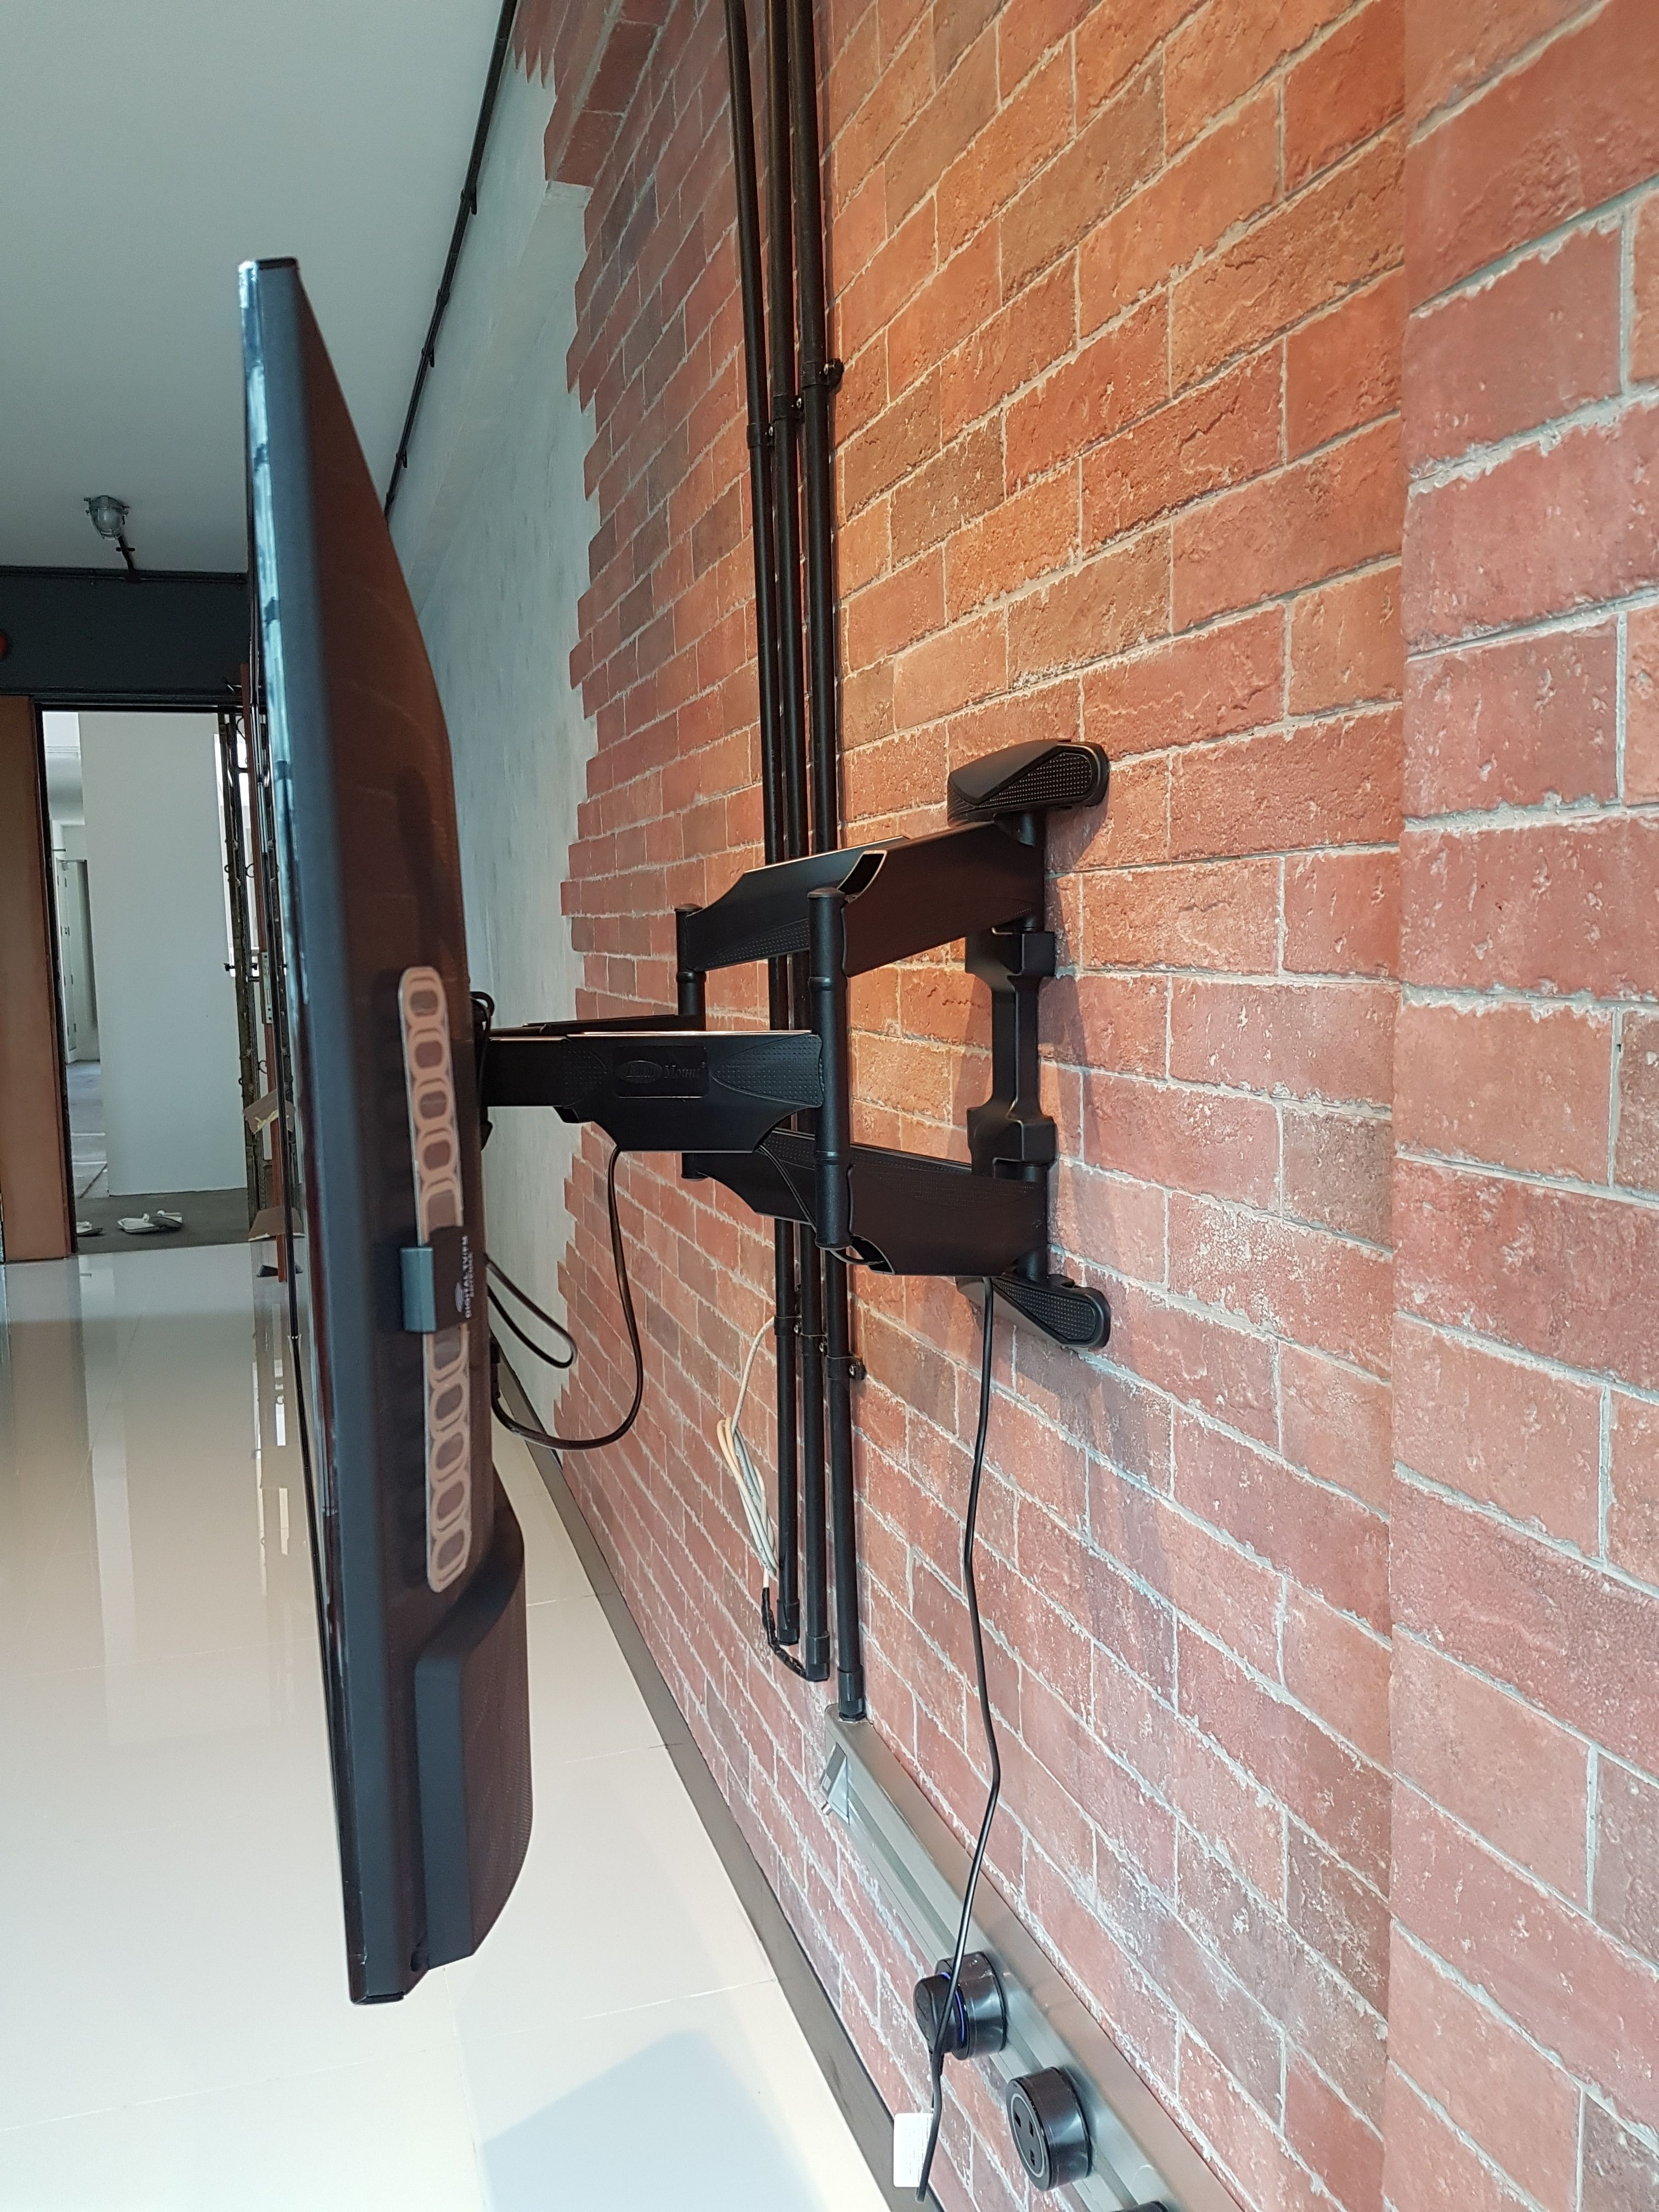 Double Arm Full Motion Tv Bracket Wall Mount In Singapore From 32 70 Can Swivel Turn Left Right Tilt Up Down Pull Out Easy For Your To Plug Cables